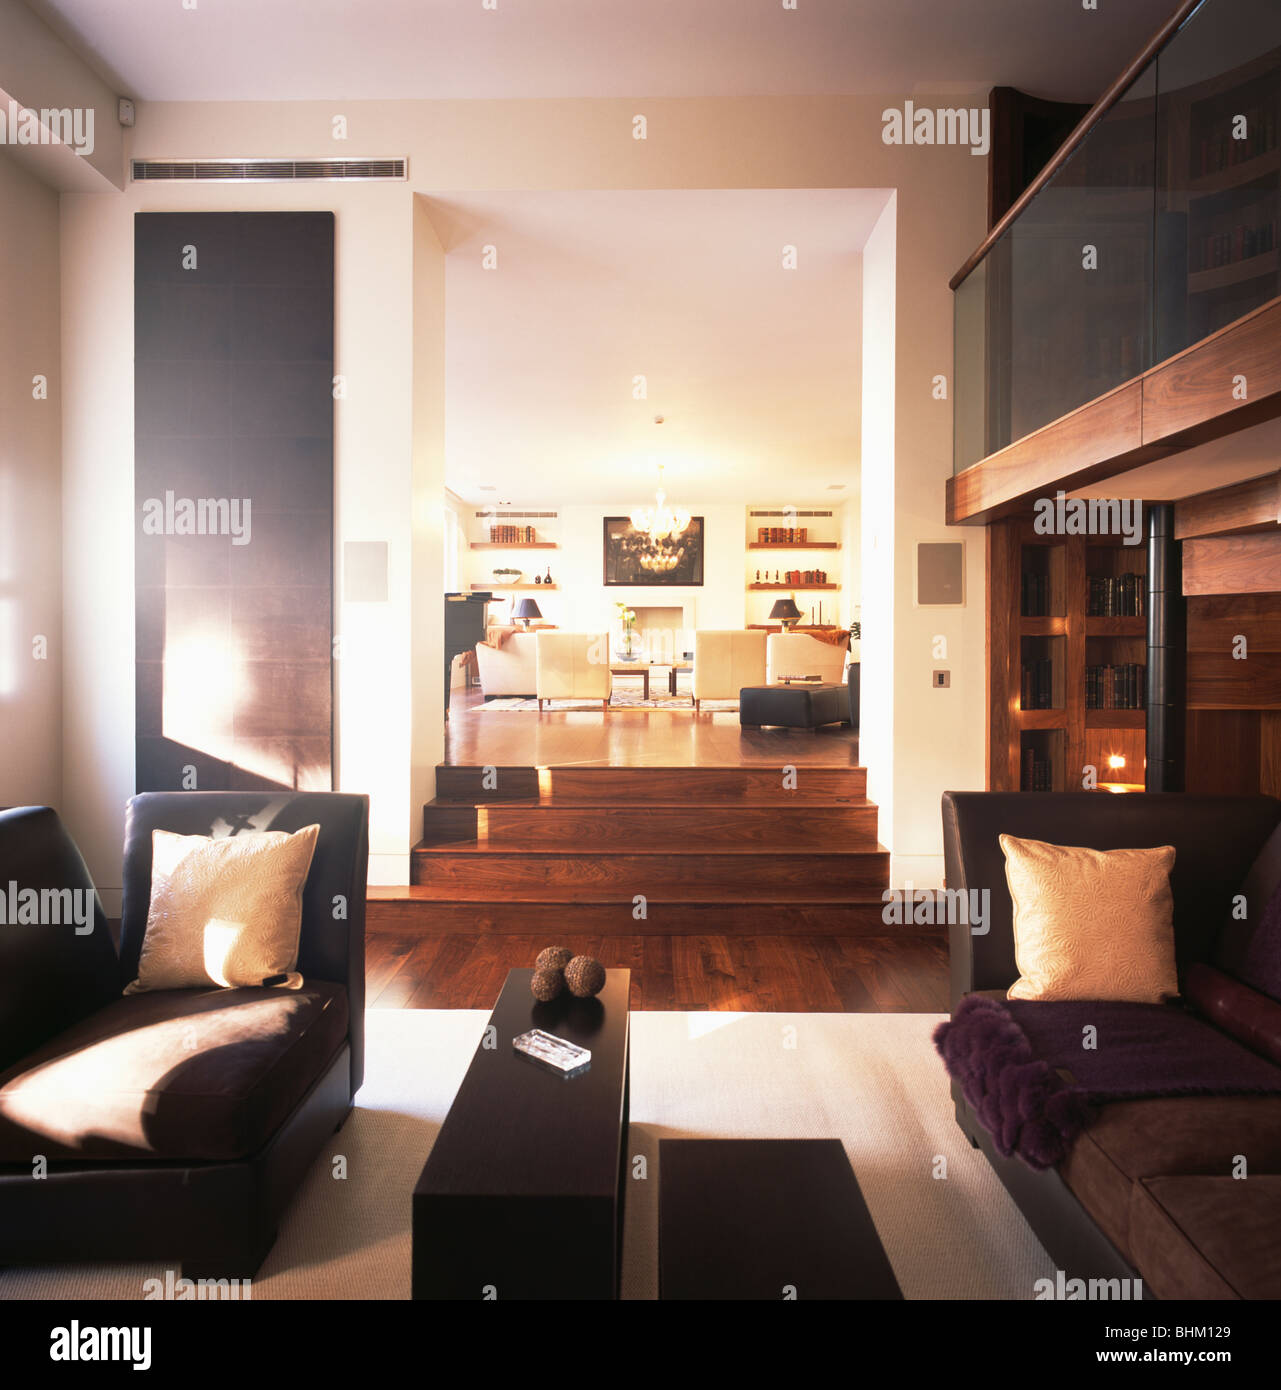 Wohnzimmer Interior Design Zeeland Rooms Chaise Stock Photos Rooms Chaise Stock Images Alamy